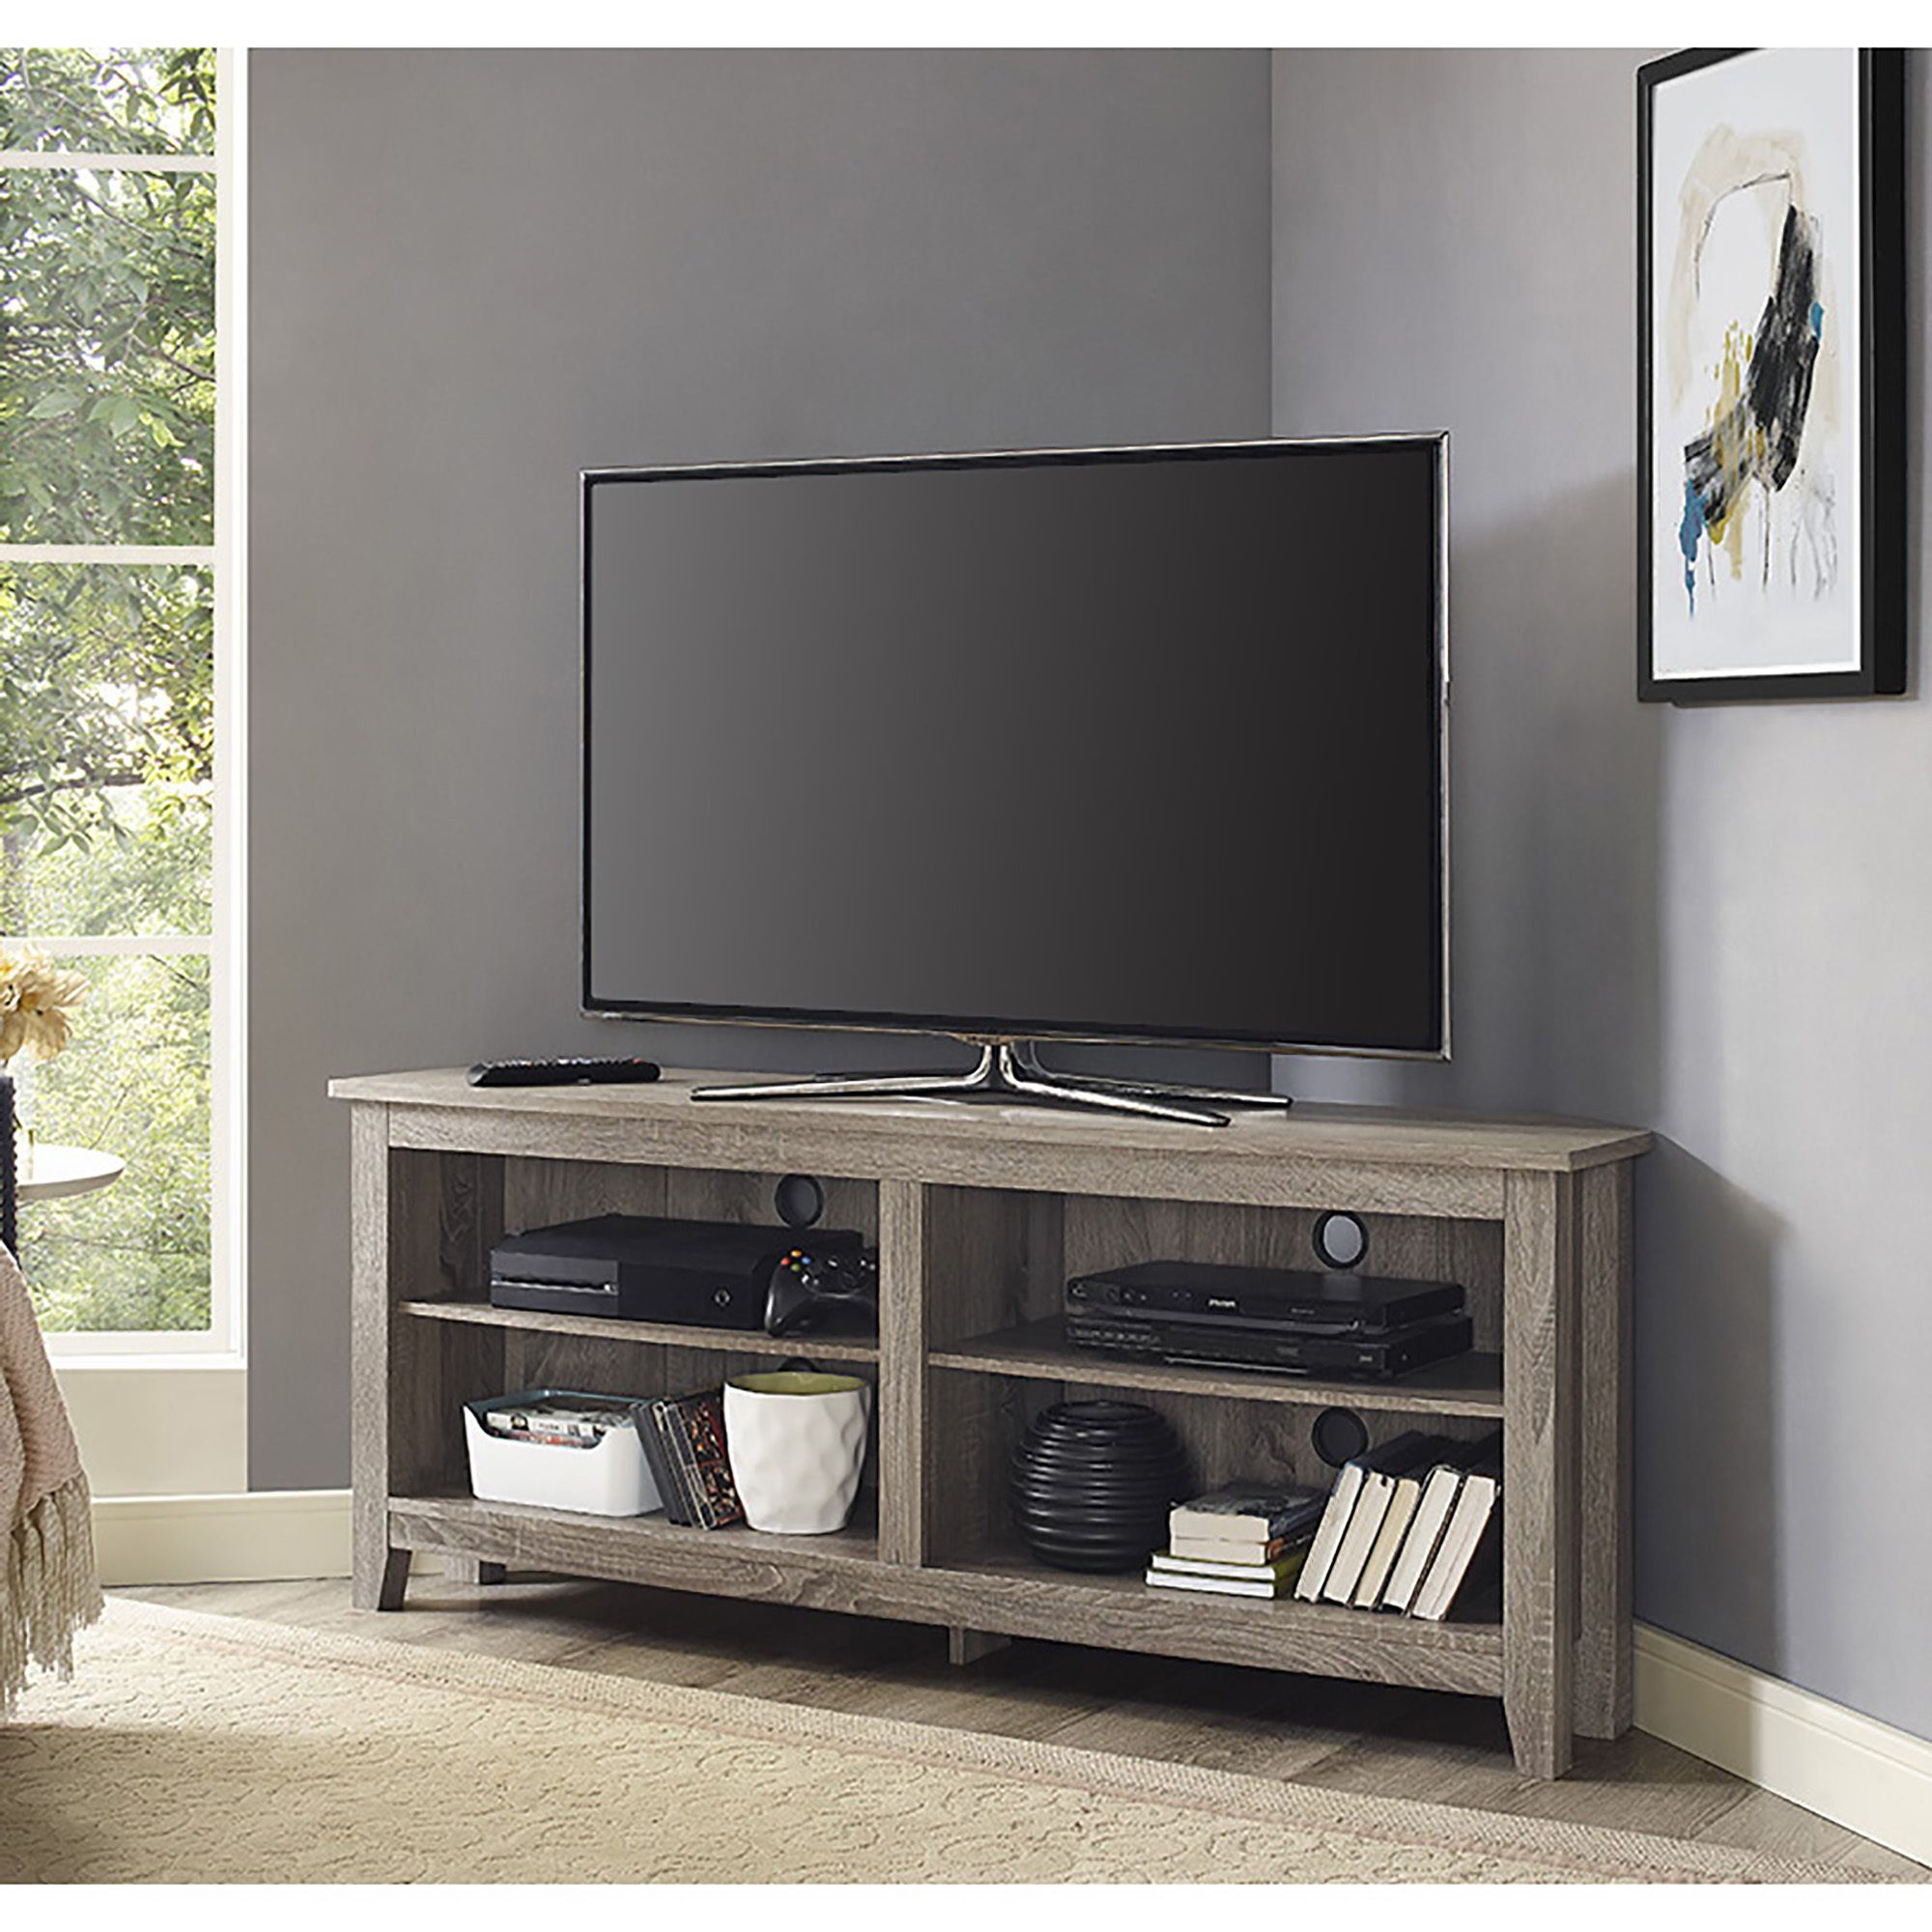 Tv Stand With Mount Target Cheap 60 Inch Corner Fireplace 55 Flat With Regard To Well Liked 55 Inch Corner Tv Stands (View 12 of 20)